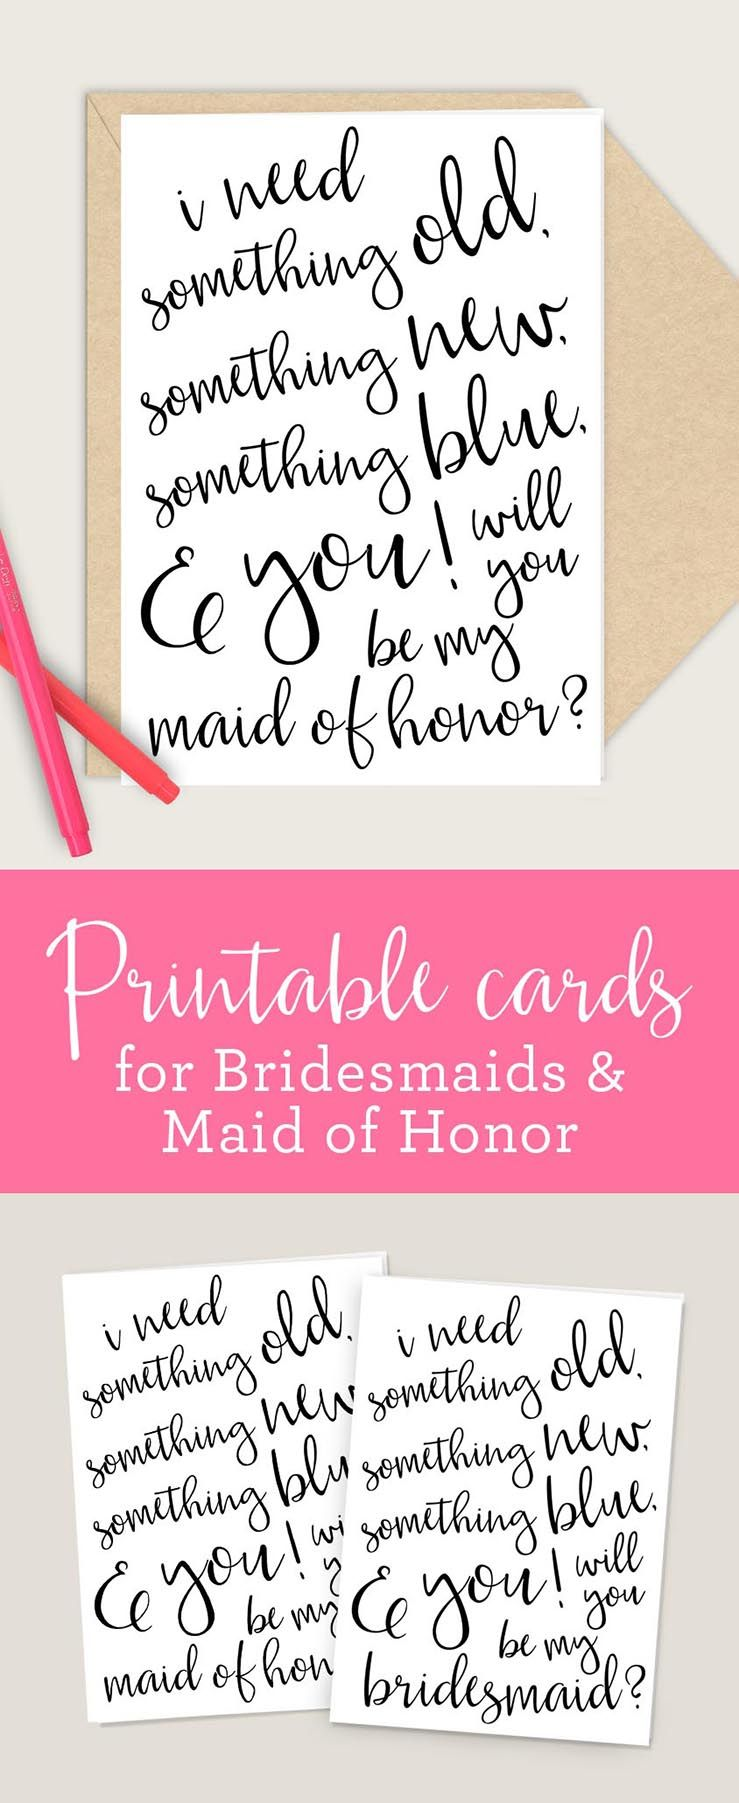 graphic about Will You Be My Maid of Honor Printable referred to as Bridesmaid Maid of Honor Printable Playing cards, 4x6 5x7 PDF